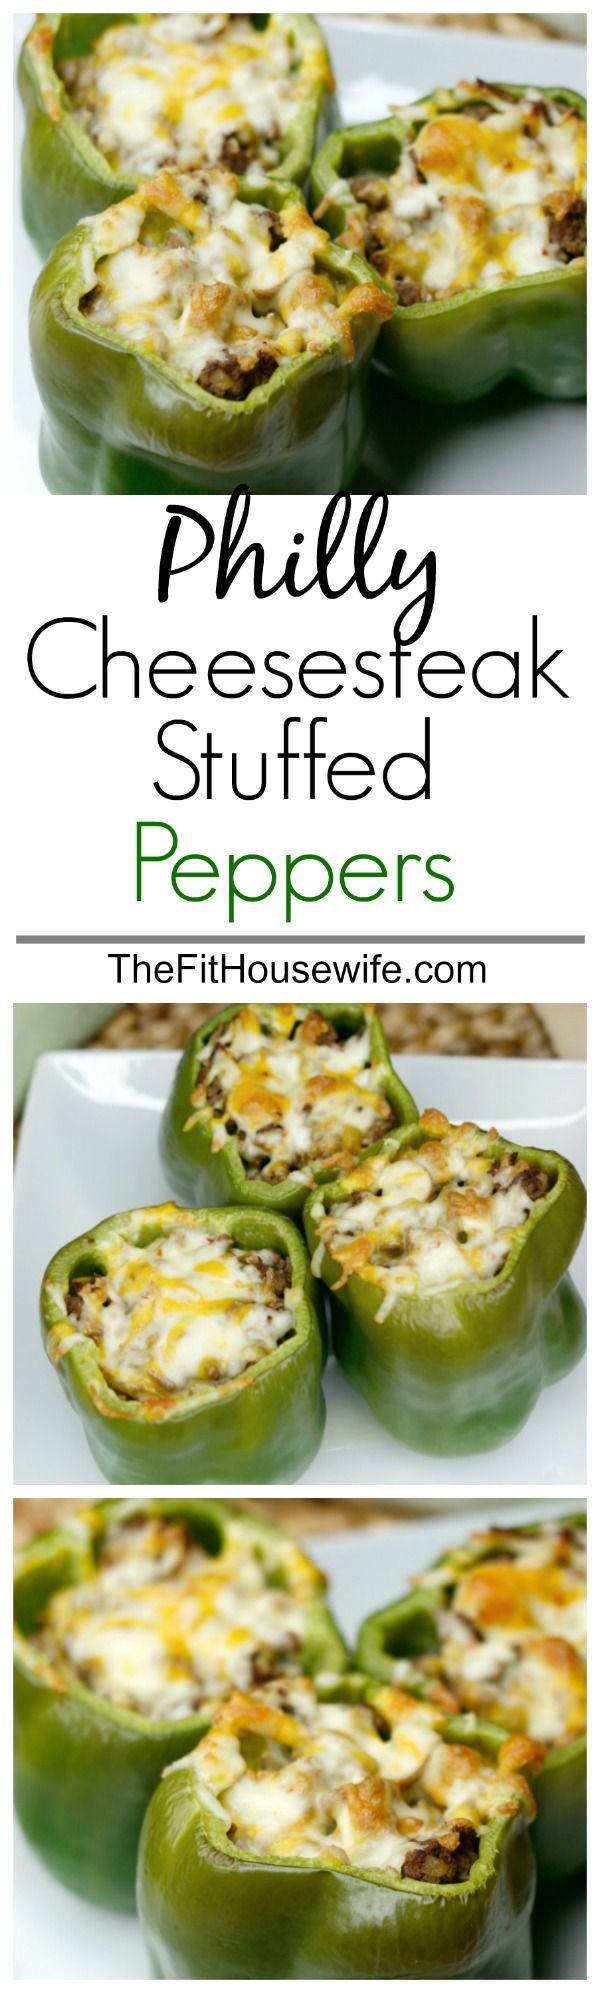 Philly Cheesesteak Stuffed Peppers. A delicious and healthy low-carb meal the whole family will enjoy.